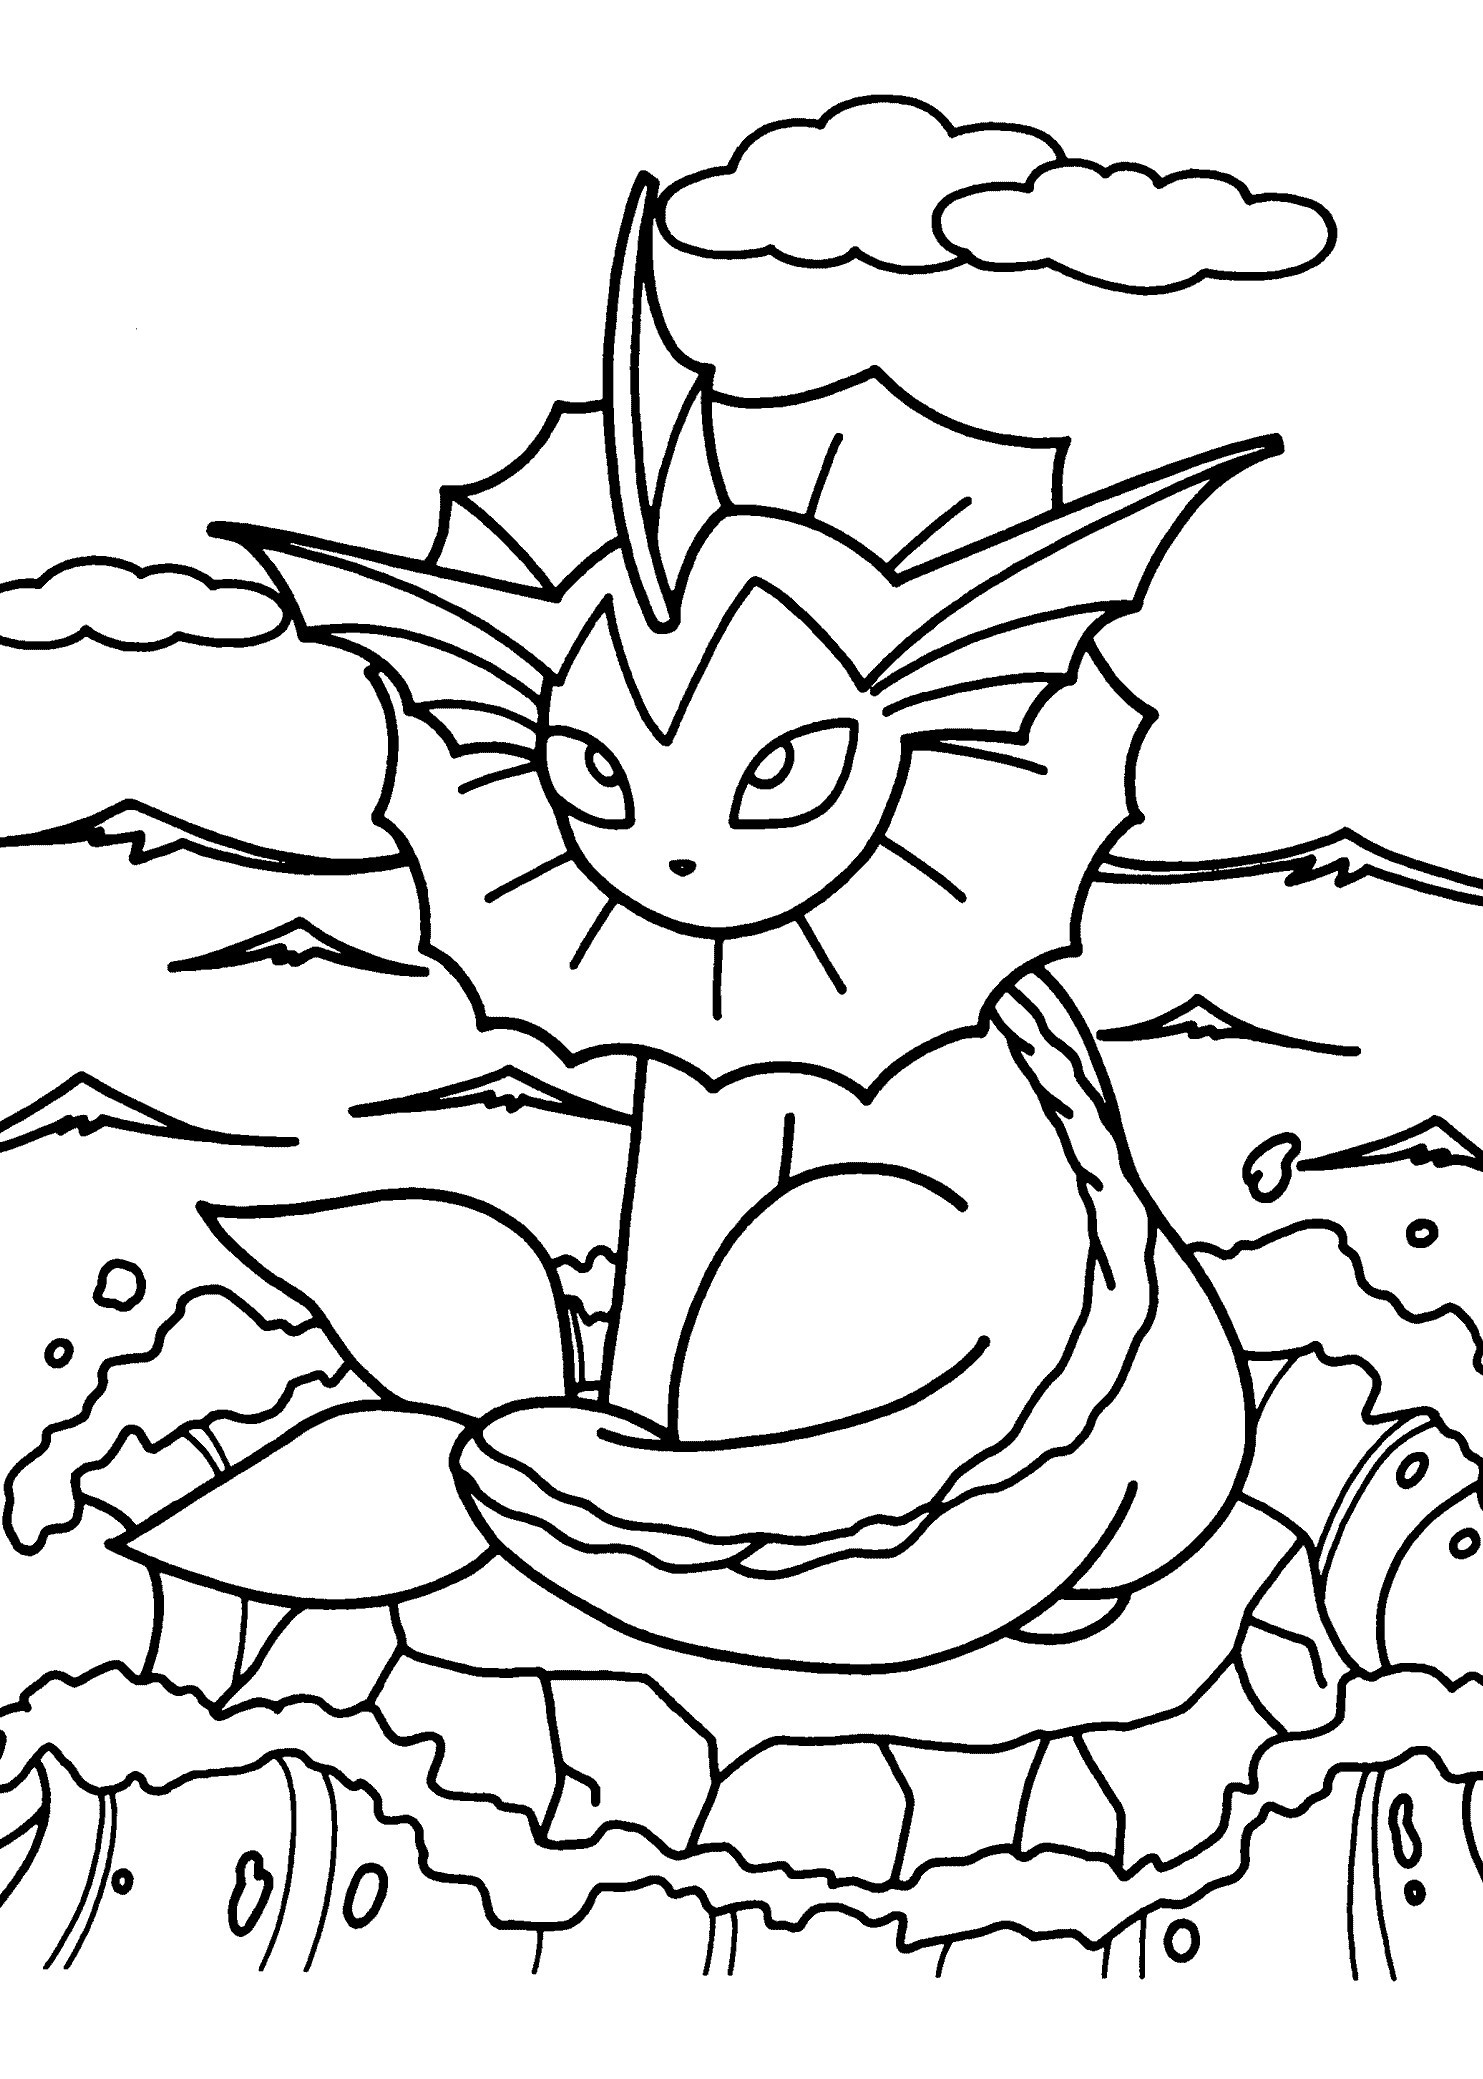 Ausmalbilder Pokemon Xy Genial 28 Pixelmon Coloring Pages Sammlung